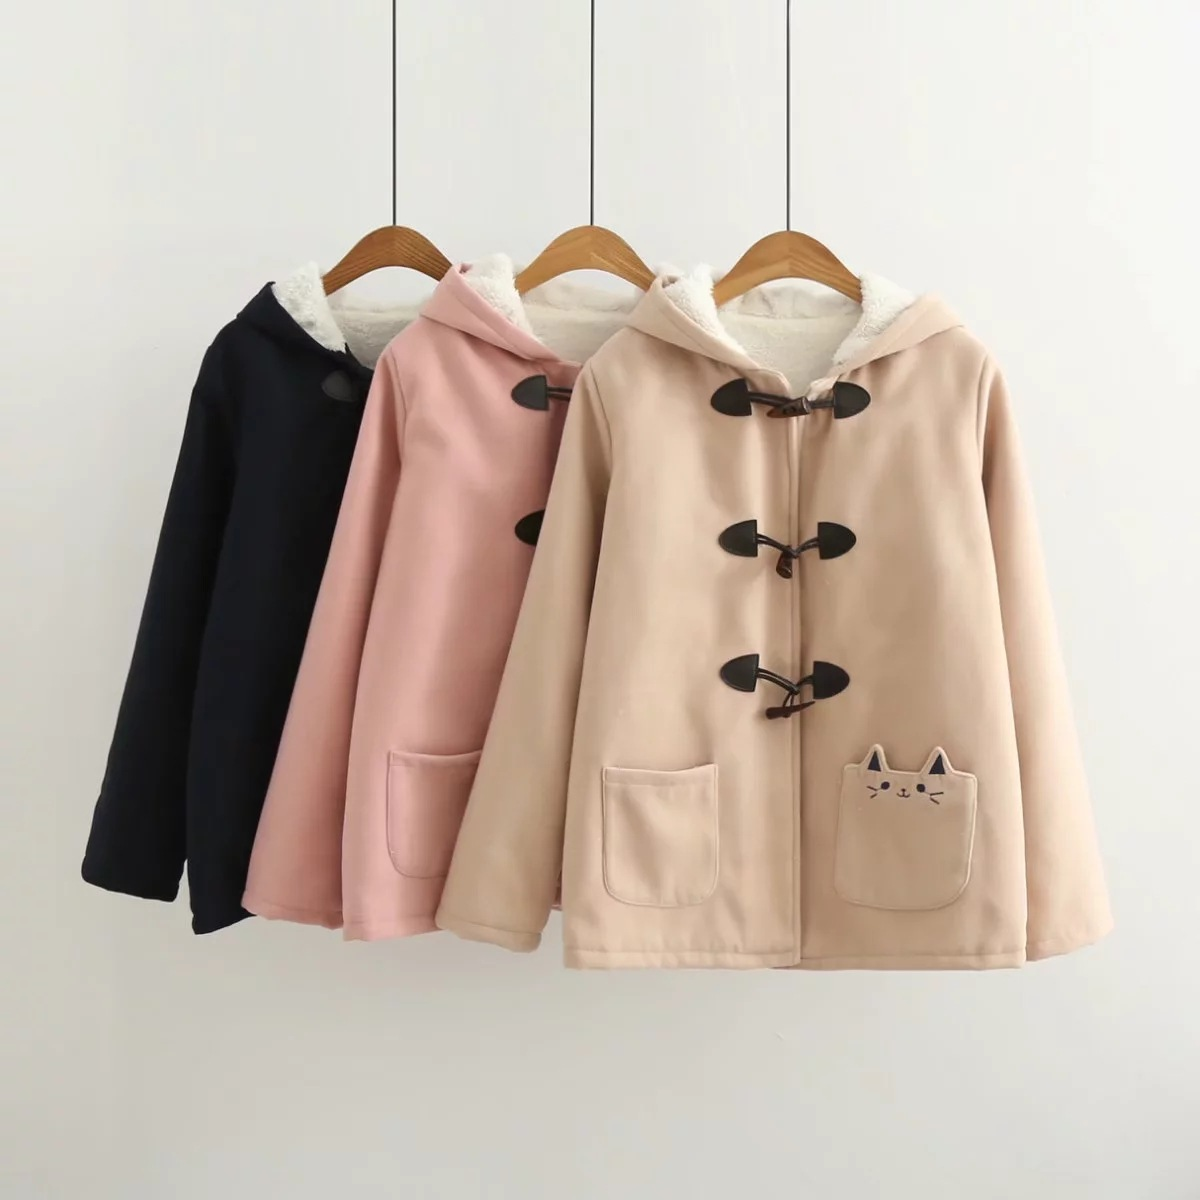 2018 Winter New Horns Buckle Sweet Preppy Style Cute Pocket Cat Embroidered Long Sleeve Warm Hooded Woolen Jacket